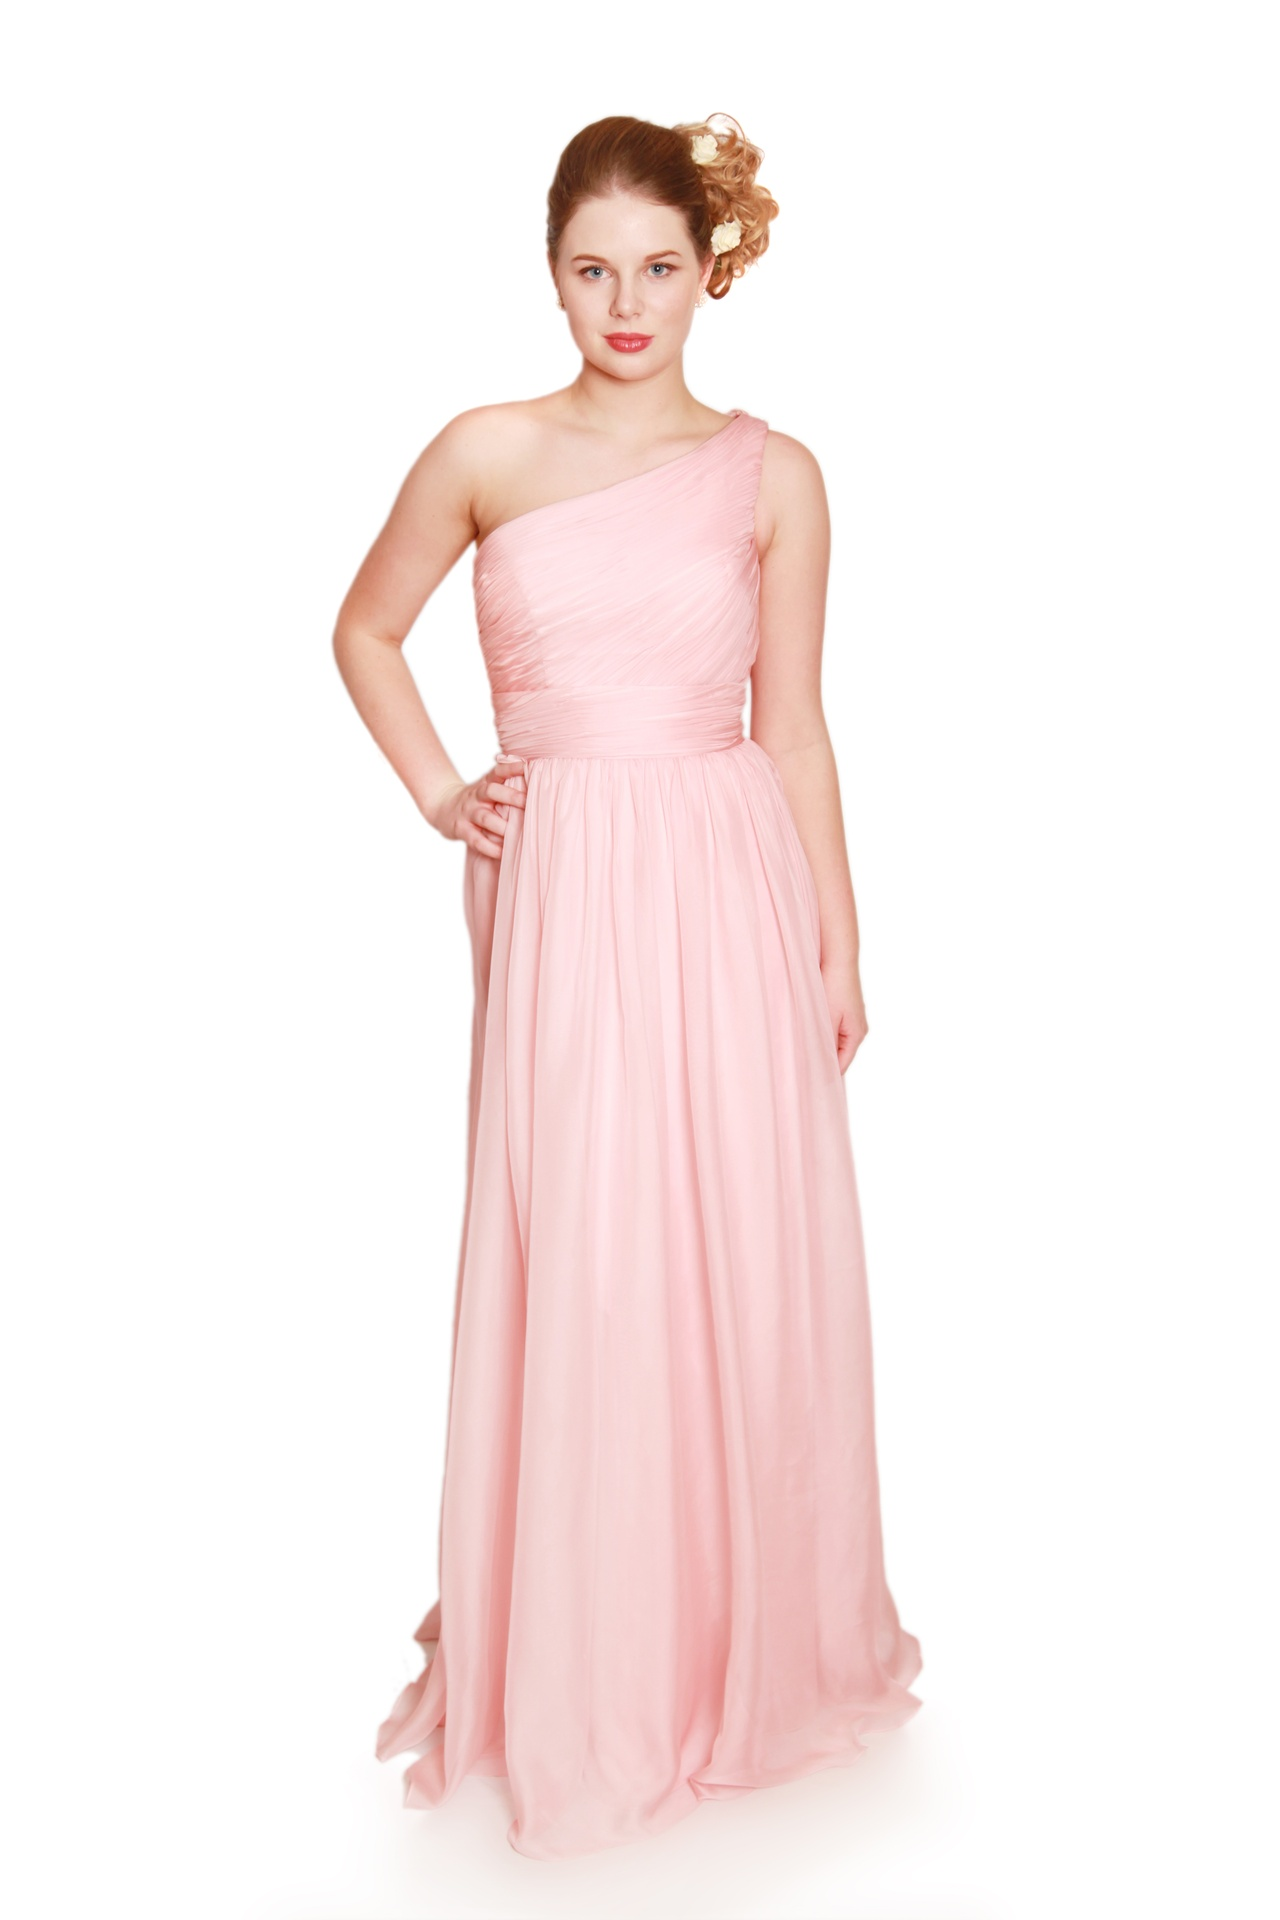 Bridesmaid dresses for different shapes and sizes embm08 embm07 one shoulder bridesmaid dress dusky pink bridesmaid dress blush pink bridesmaid dress ombrellifo Image collections